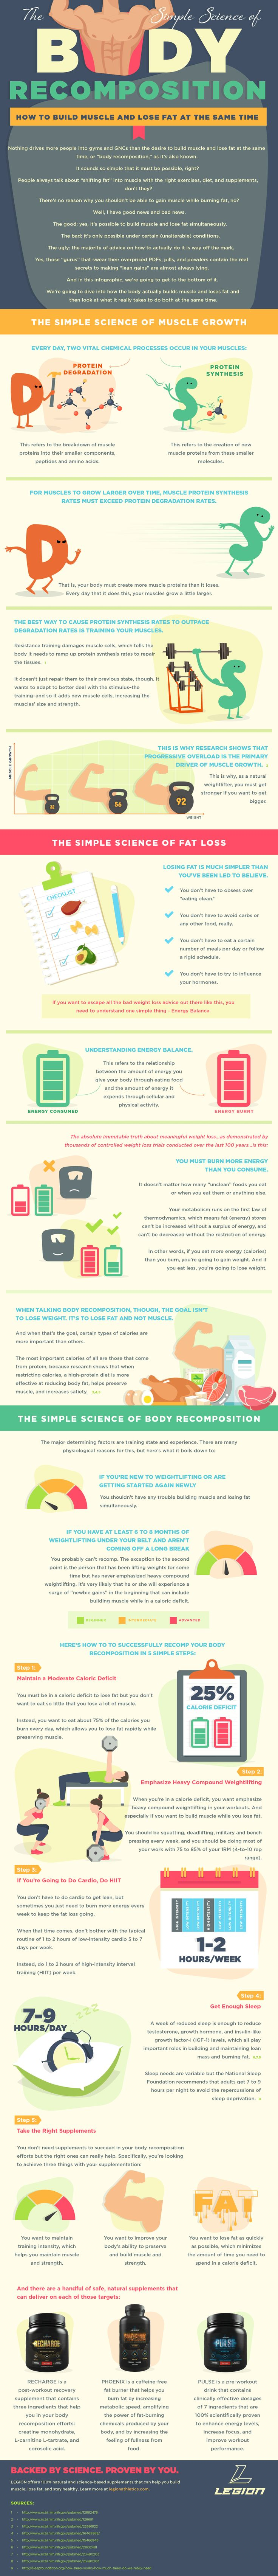 """https://legionathletics.com/body-recomposition-infographic/  share text;  Body recomposition, as people """"in the know"""" like to call it, sounds so simple that it must be possible, right?  Well, it is, but only under a few very specific conditions.  In this infographic, we're going to dive into how the body actually builds muscle and loses fat and then look at what it takes to do both at the same time.  Check this out to learn more."""